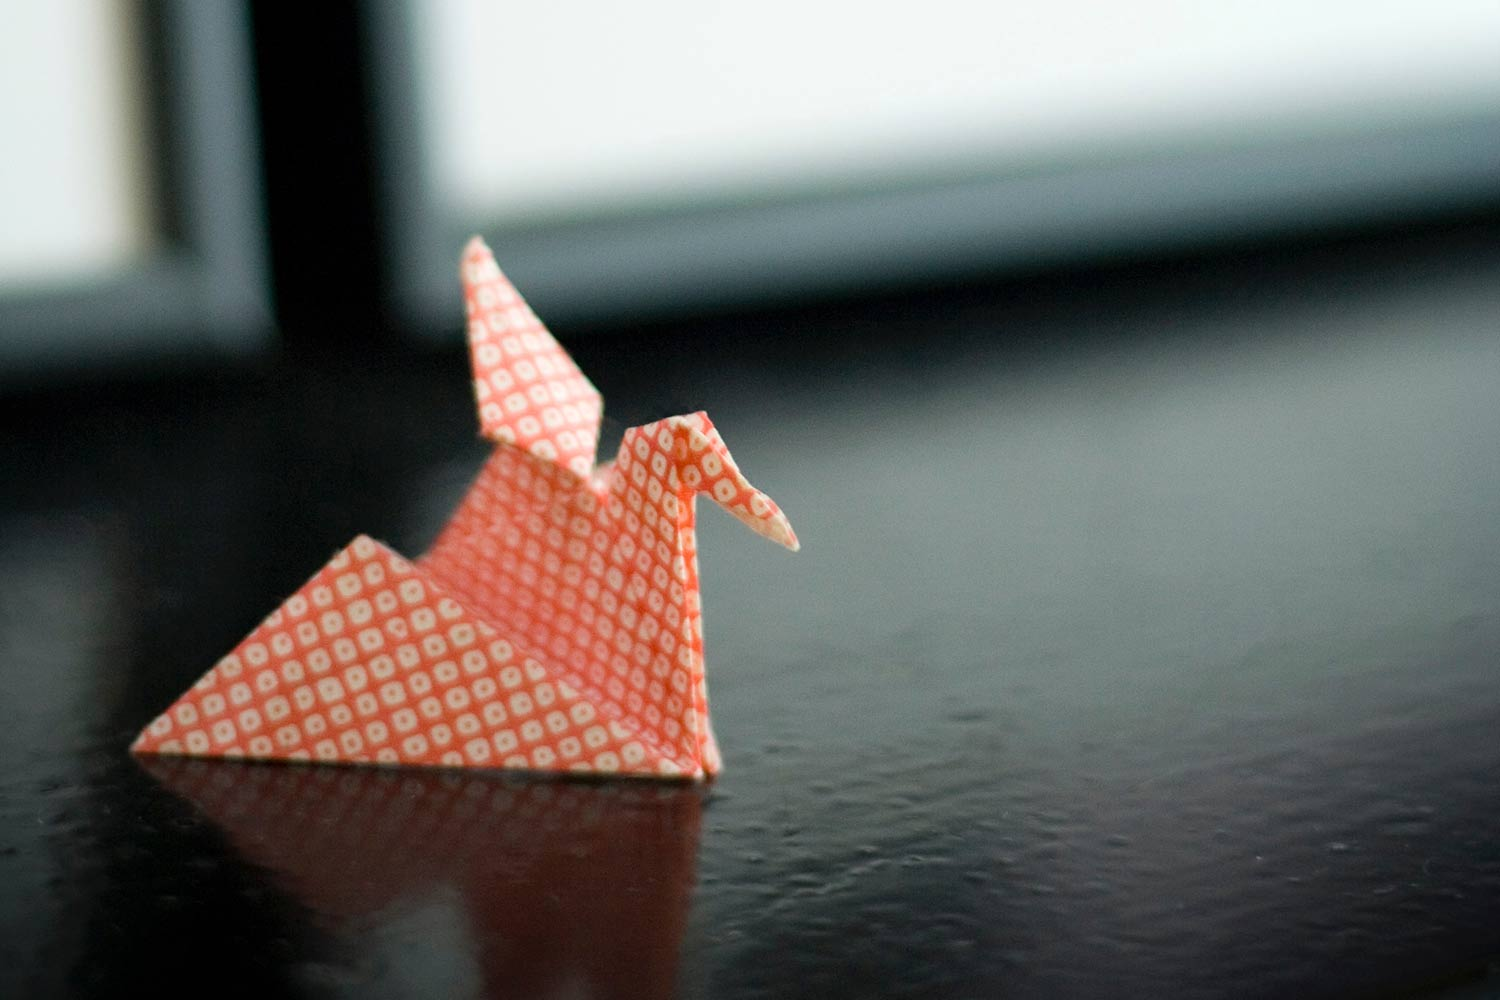 One of the New York cranes.